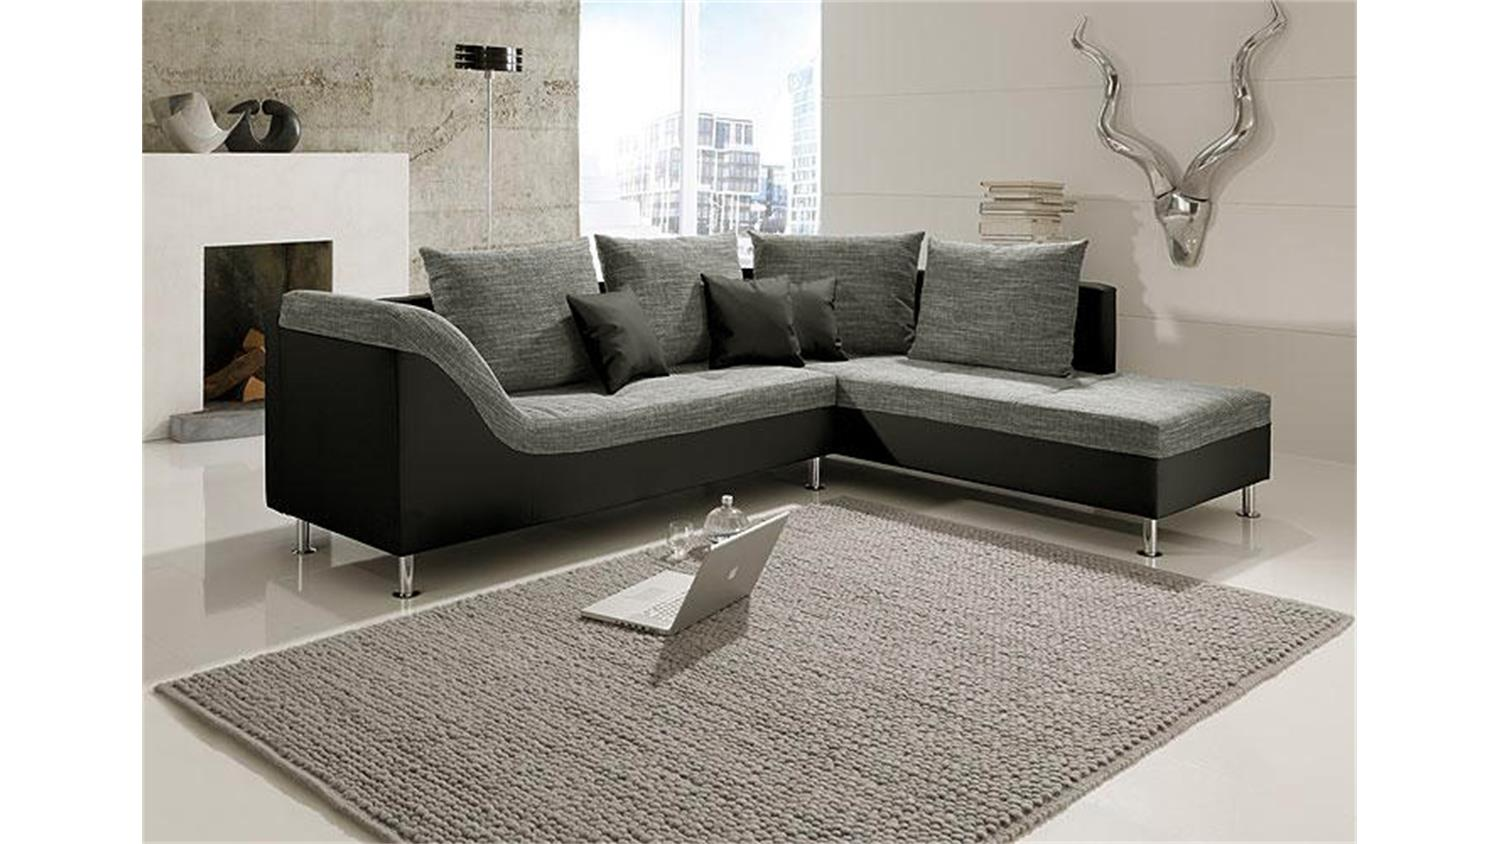 ecksofa philip mit ottomane rechts schwarz und stoff grau. Black Bedroom Furniture Sets. Home Design Ideas